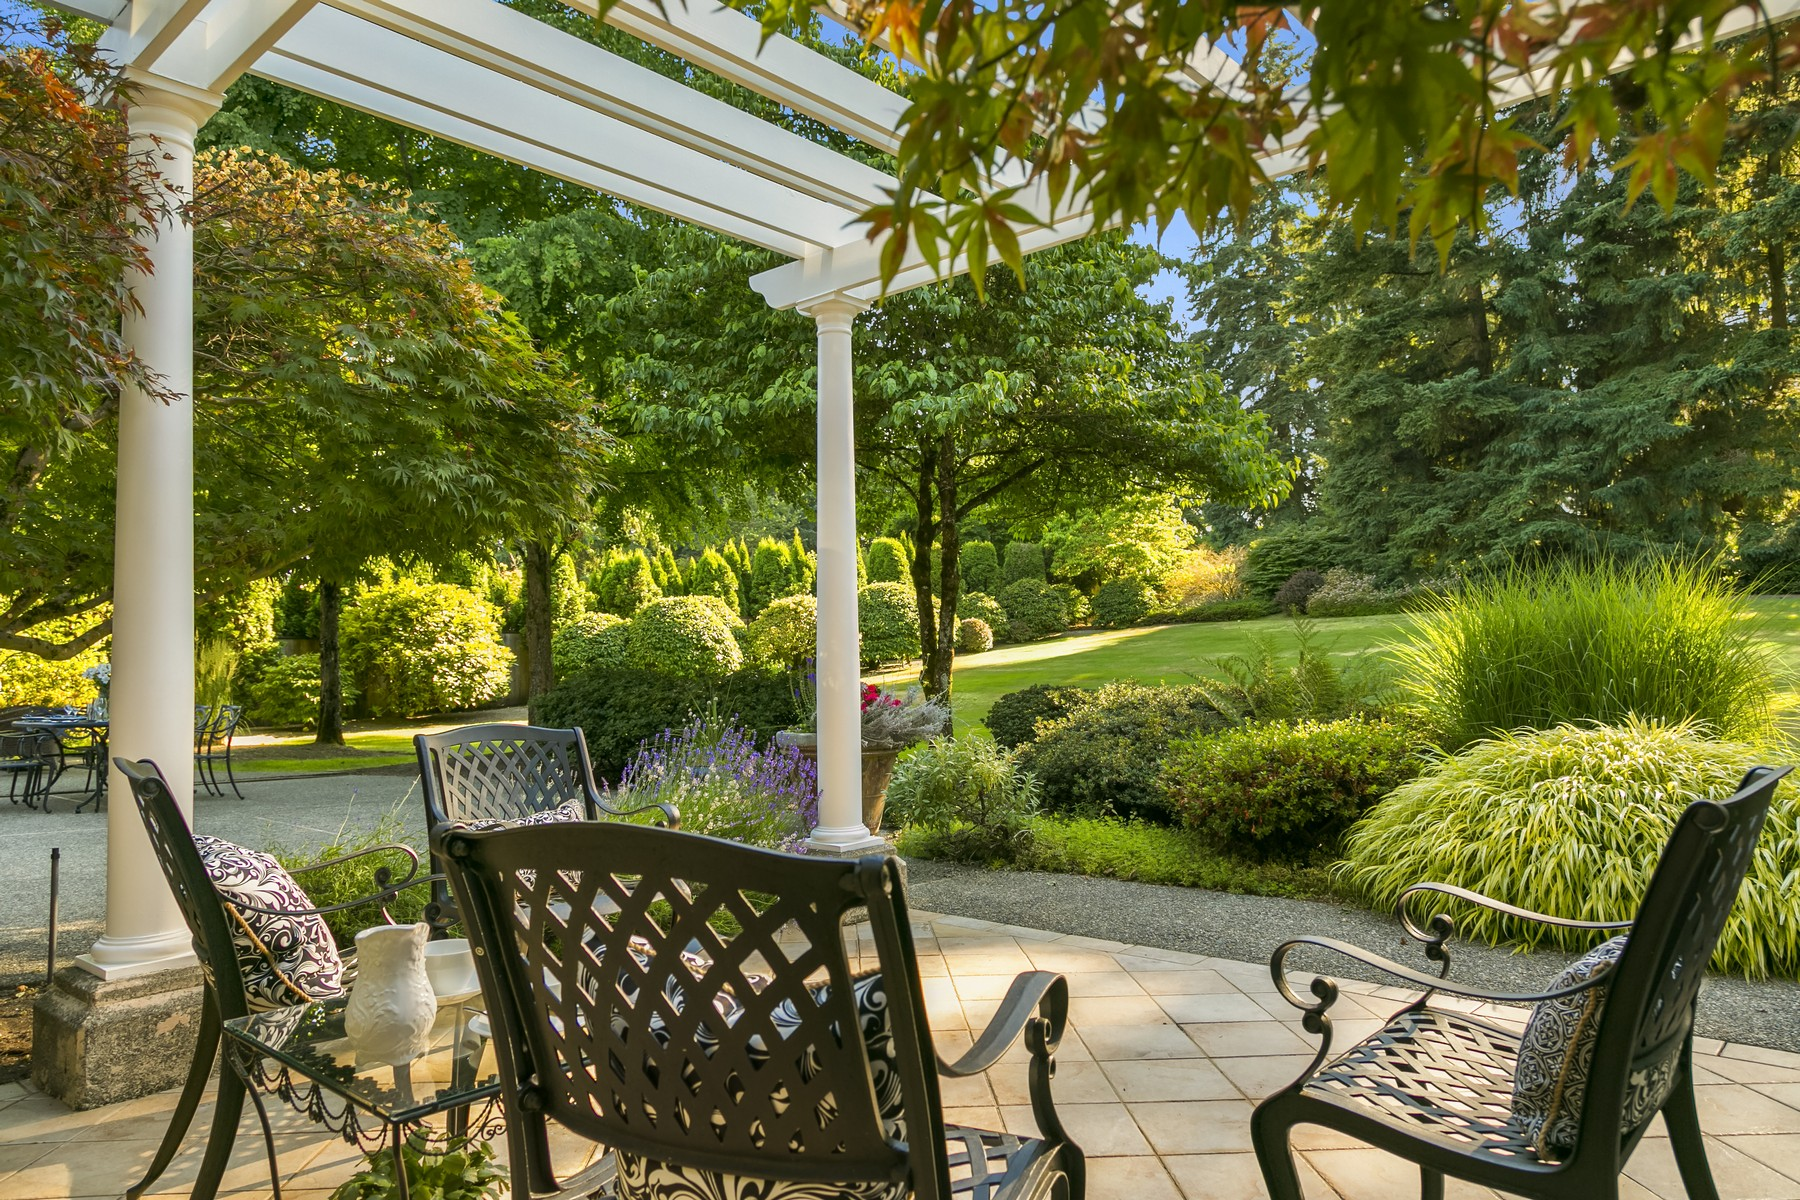 Additional photo for property listing at Architecturally Distinct Hollywood Hills Estate 15430 NE 152nd Place Woodinville, Washington 98072 United States